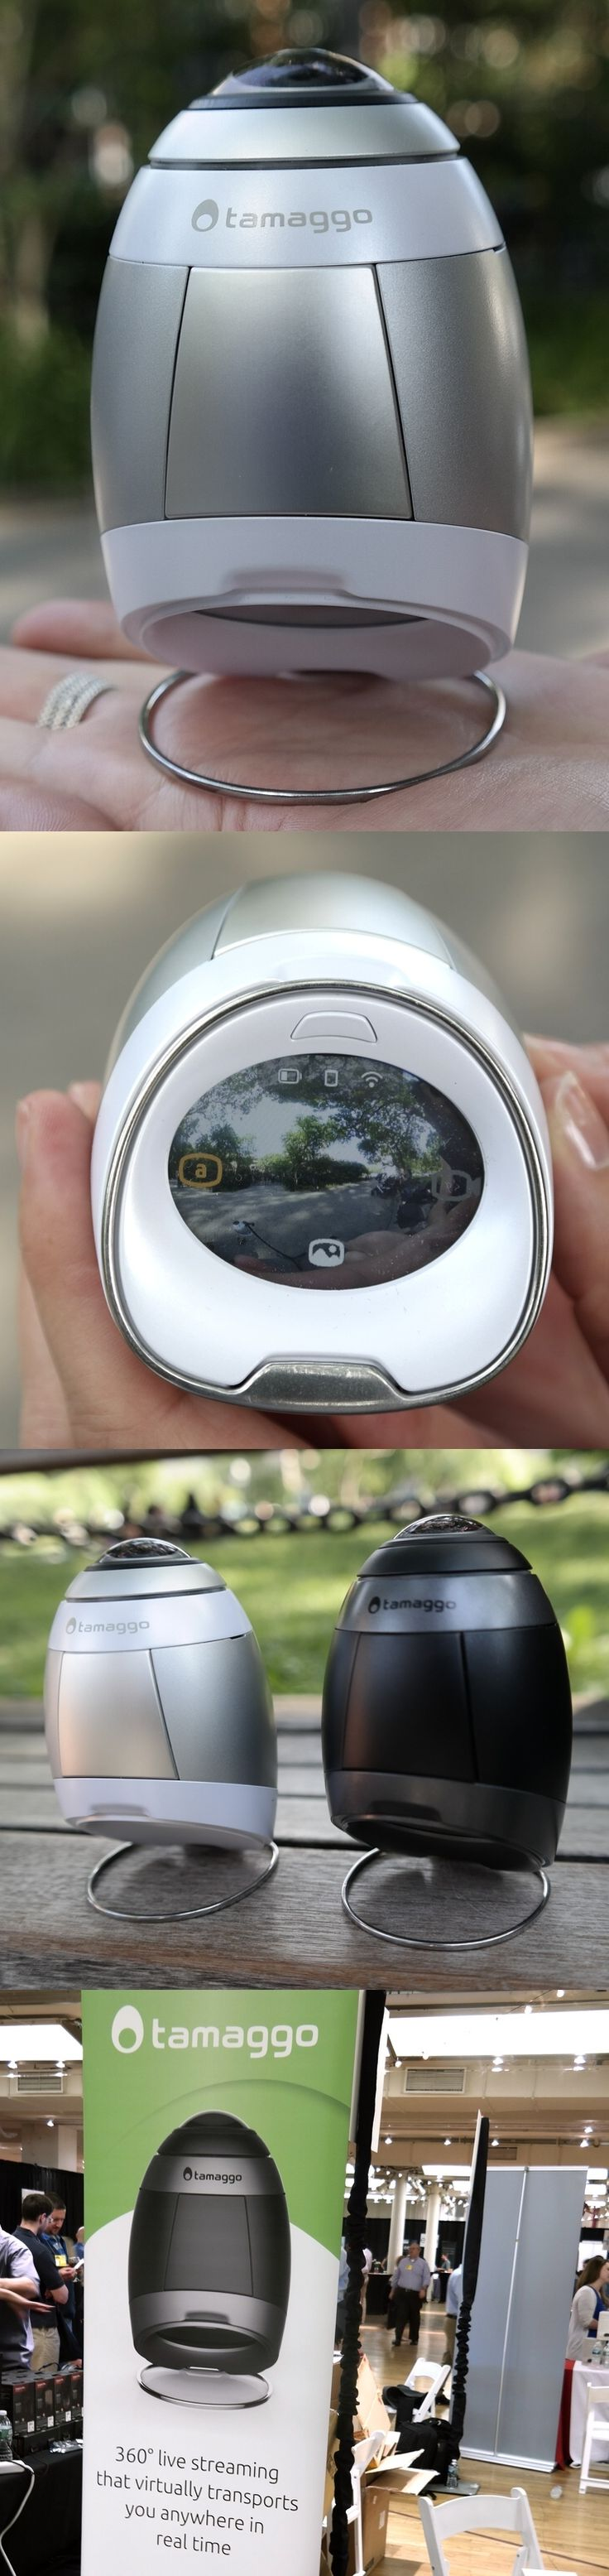 """The $399 Tamaggo 360LiveCam live-streaming 360-degree camera has a clever touchscreen which lets users preview and review their work. Panomorph image technology, a 12MP sensor and an f/2.2 lens by Immervision keep 360-by-220-degree HD videos and 4K photos evenly lit and sharp. Free Android and iOS apps support remote viewing and social media sharing. Users can link to the unit directly or via Wi-Fi. The Tamaggo, which will have a cameo in the movie """"All I See is You,"""" is now on sale. #Pepcom"""